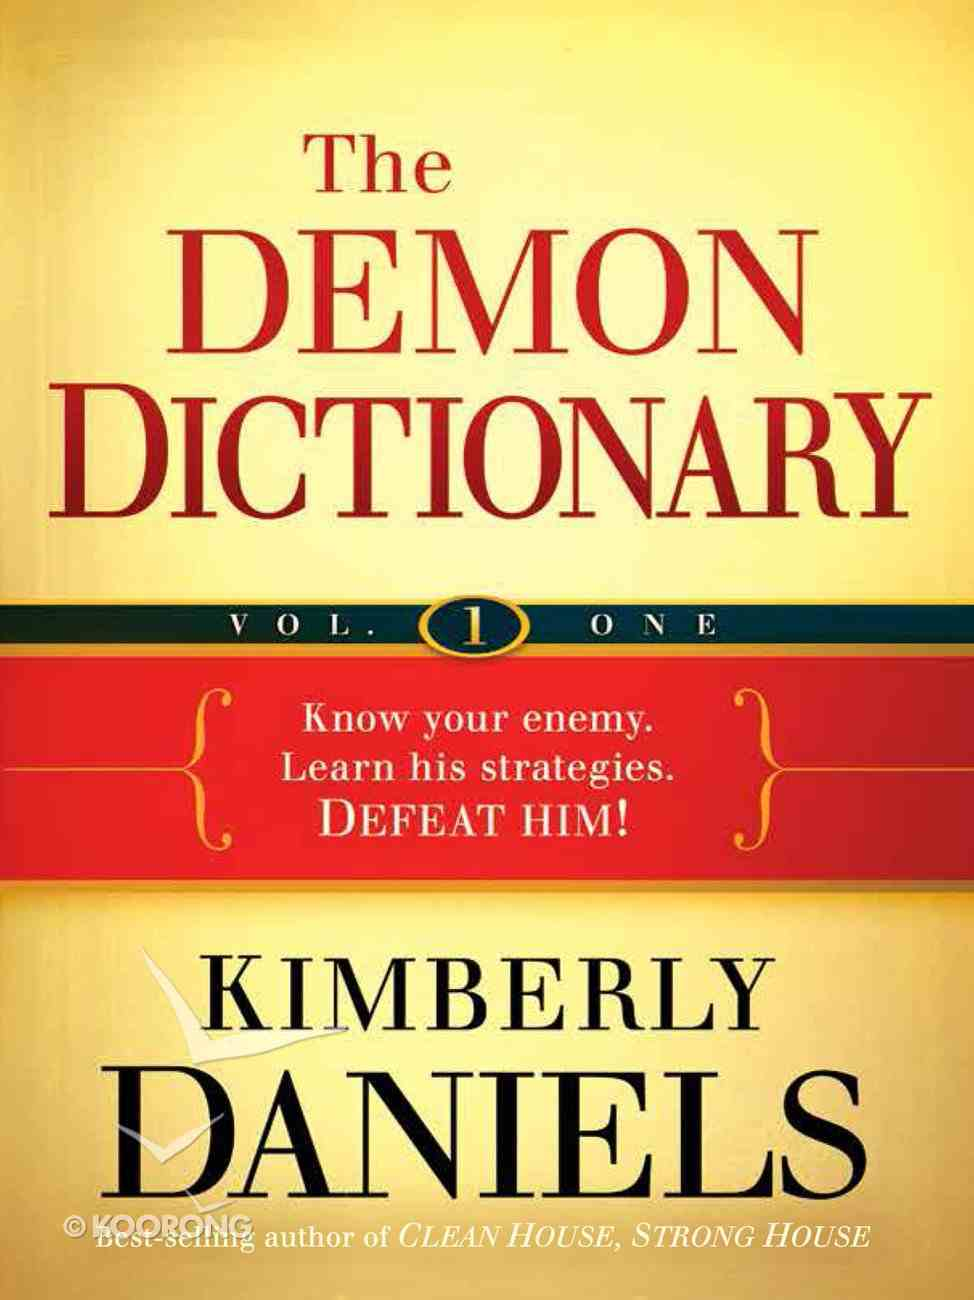 The Demon Dictionary (Volume One) eBook